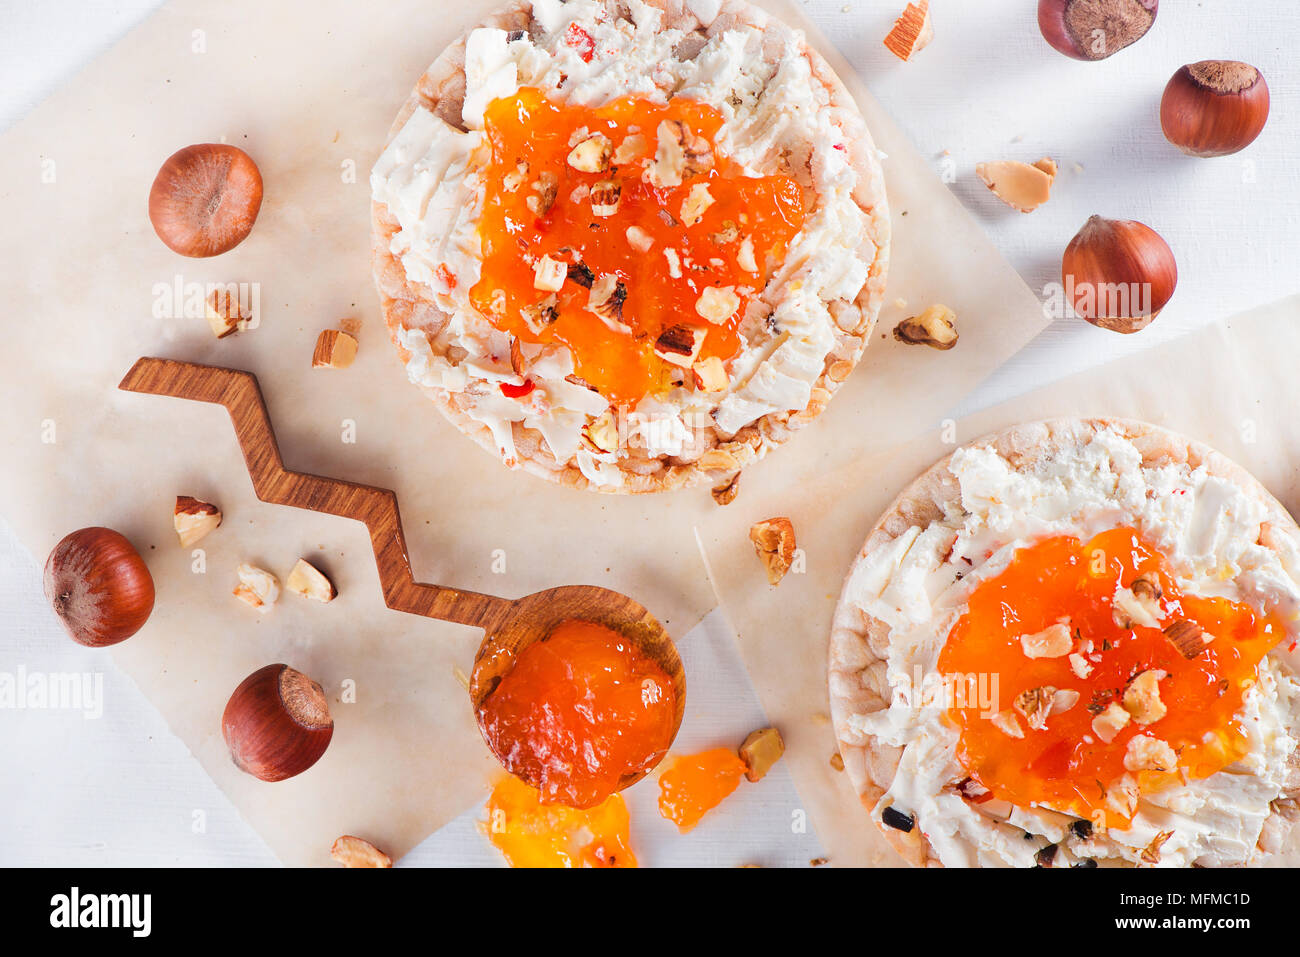 Crisp bread snack with Feta cheese, apricot jam and hazel nuts. Easy breakfast close-up on a white background with copy space. - Stock Image